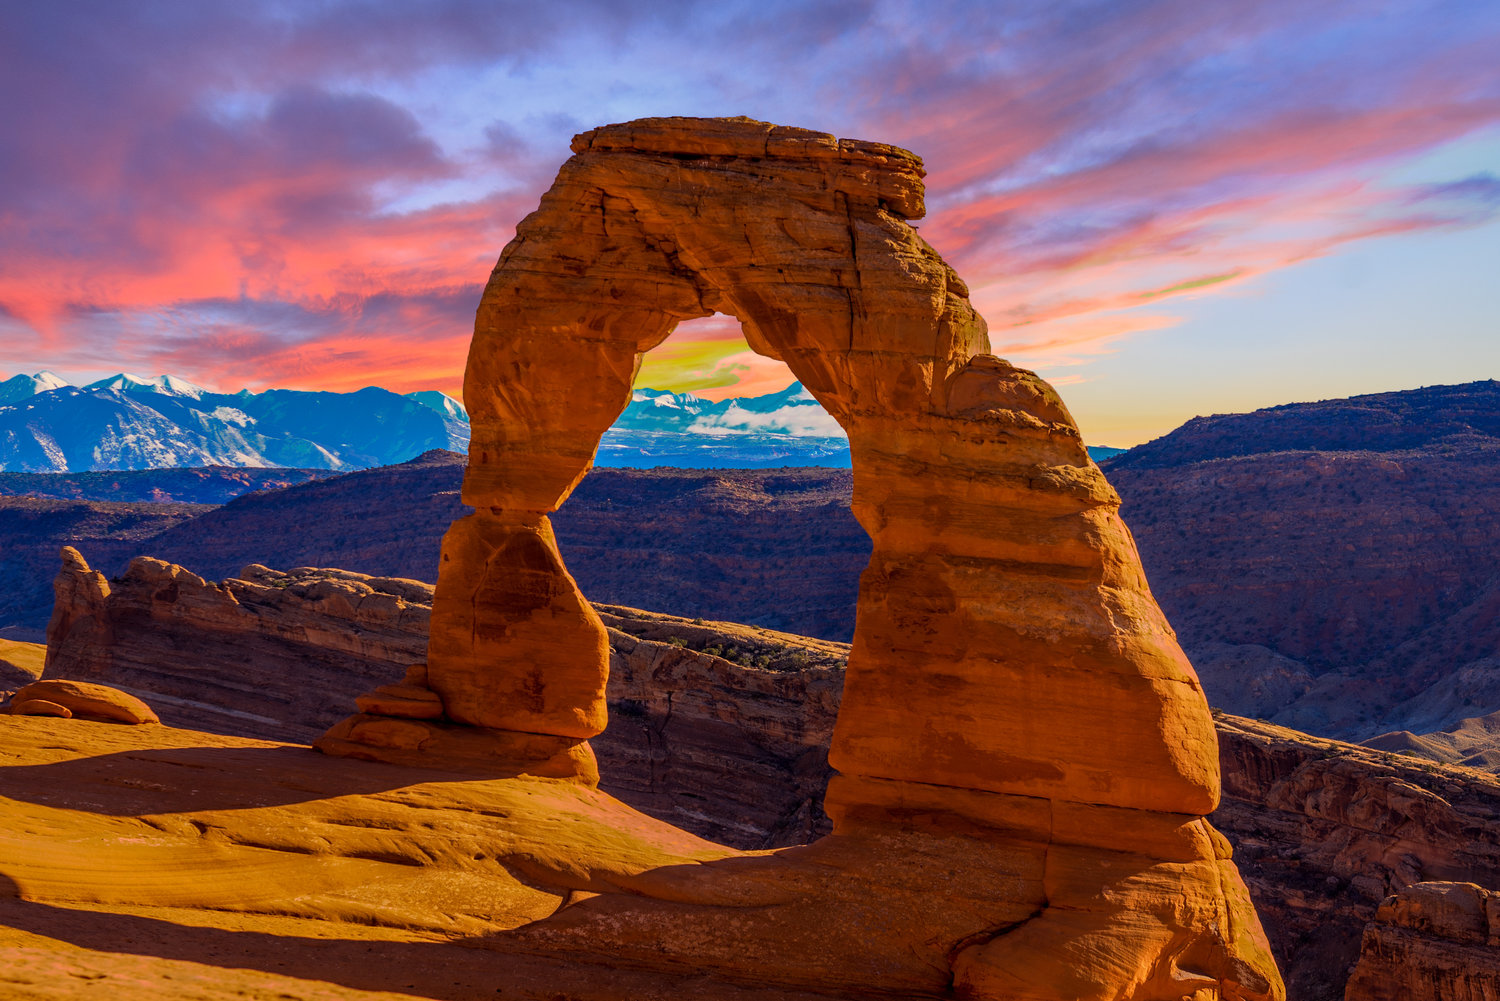 CAPTURE THE RED MAGIC OF MOAB - MAY 16-19, 2019